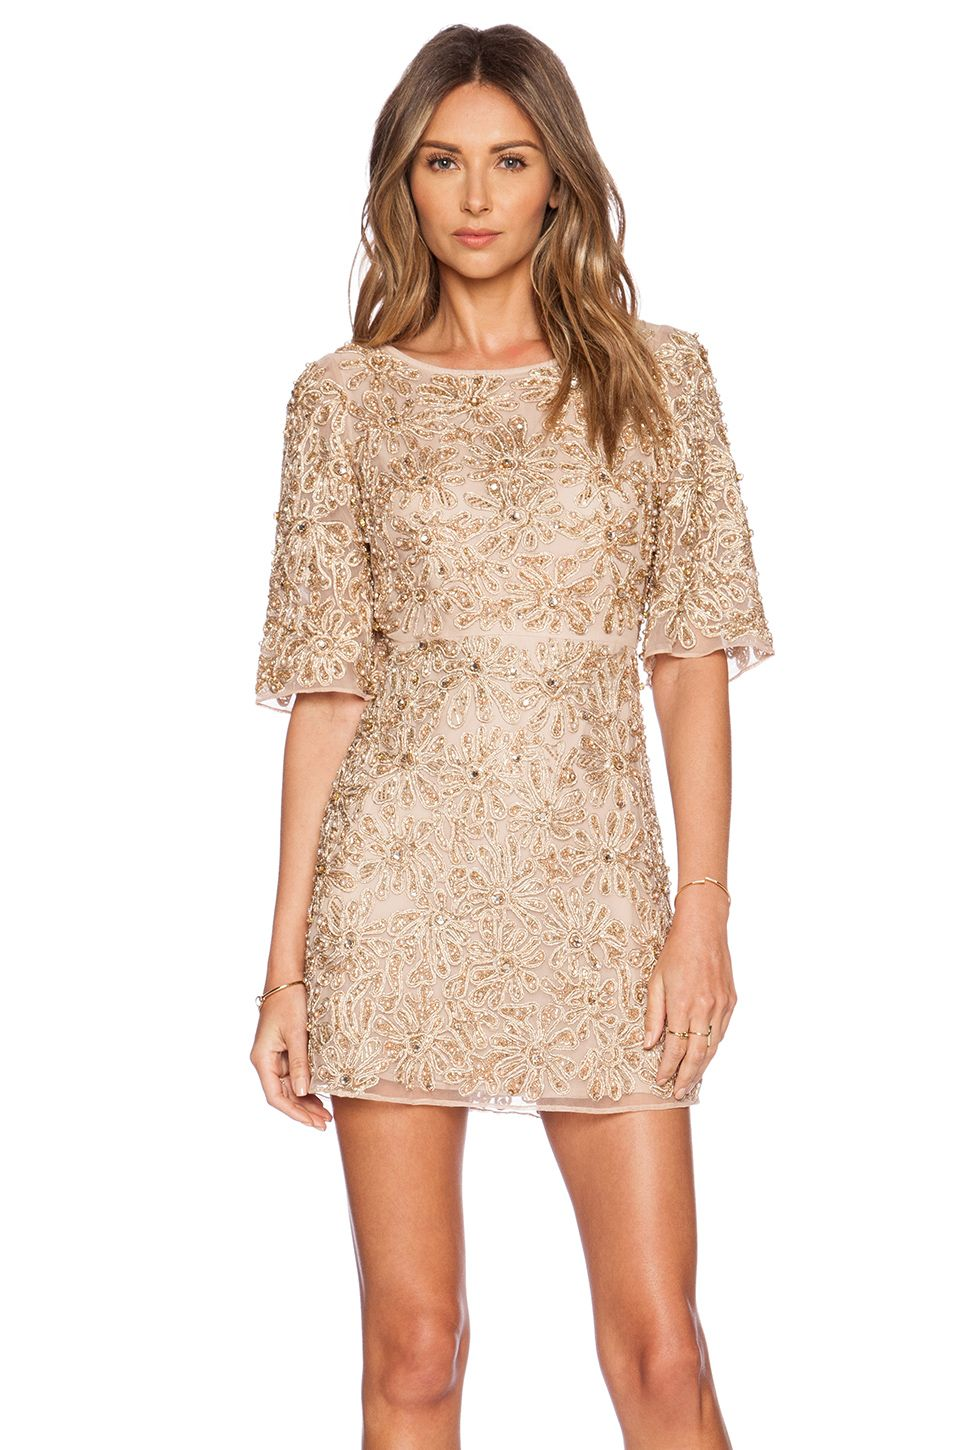 Alice and olivia cream lace dress